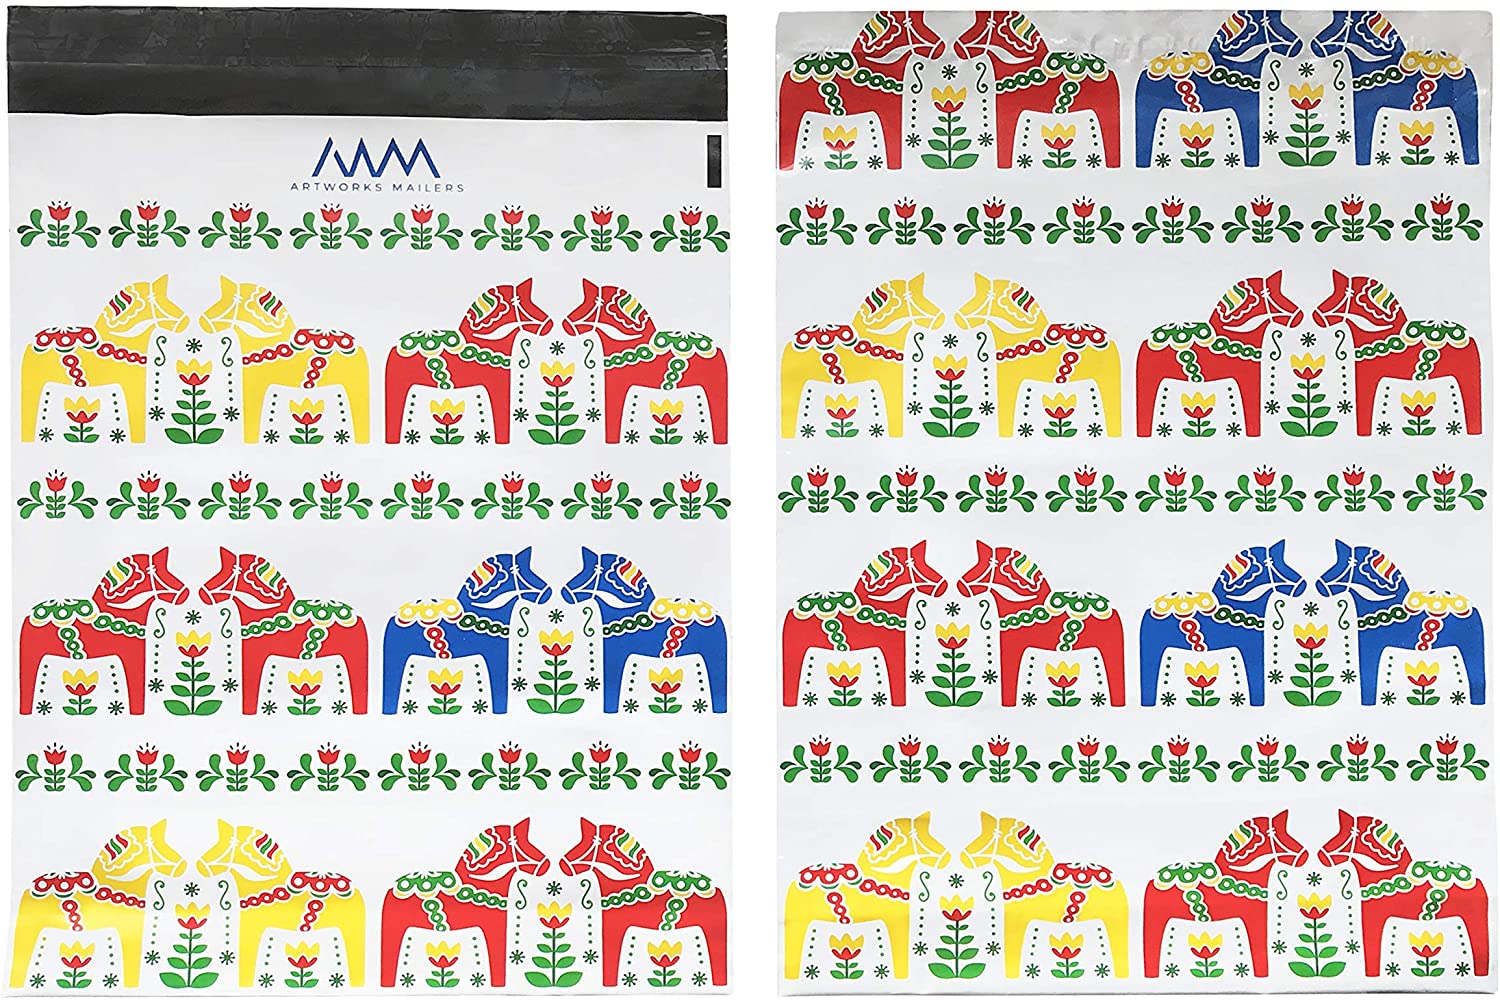 "ArtWorks Mailers 10 X 13"" Premium Poly Mailers 100 Pack Designer Shipping & Mailing Bags Durable Self Sealing Mailers Unpadded Custom Scandinavian Folk Art Dala Horse Flower Floral Design"